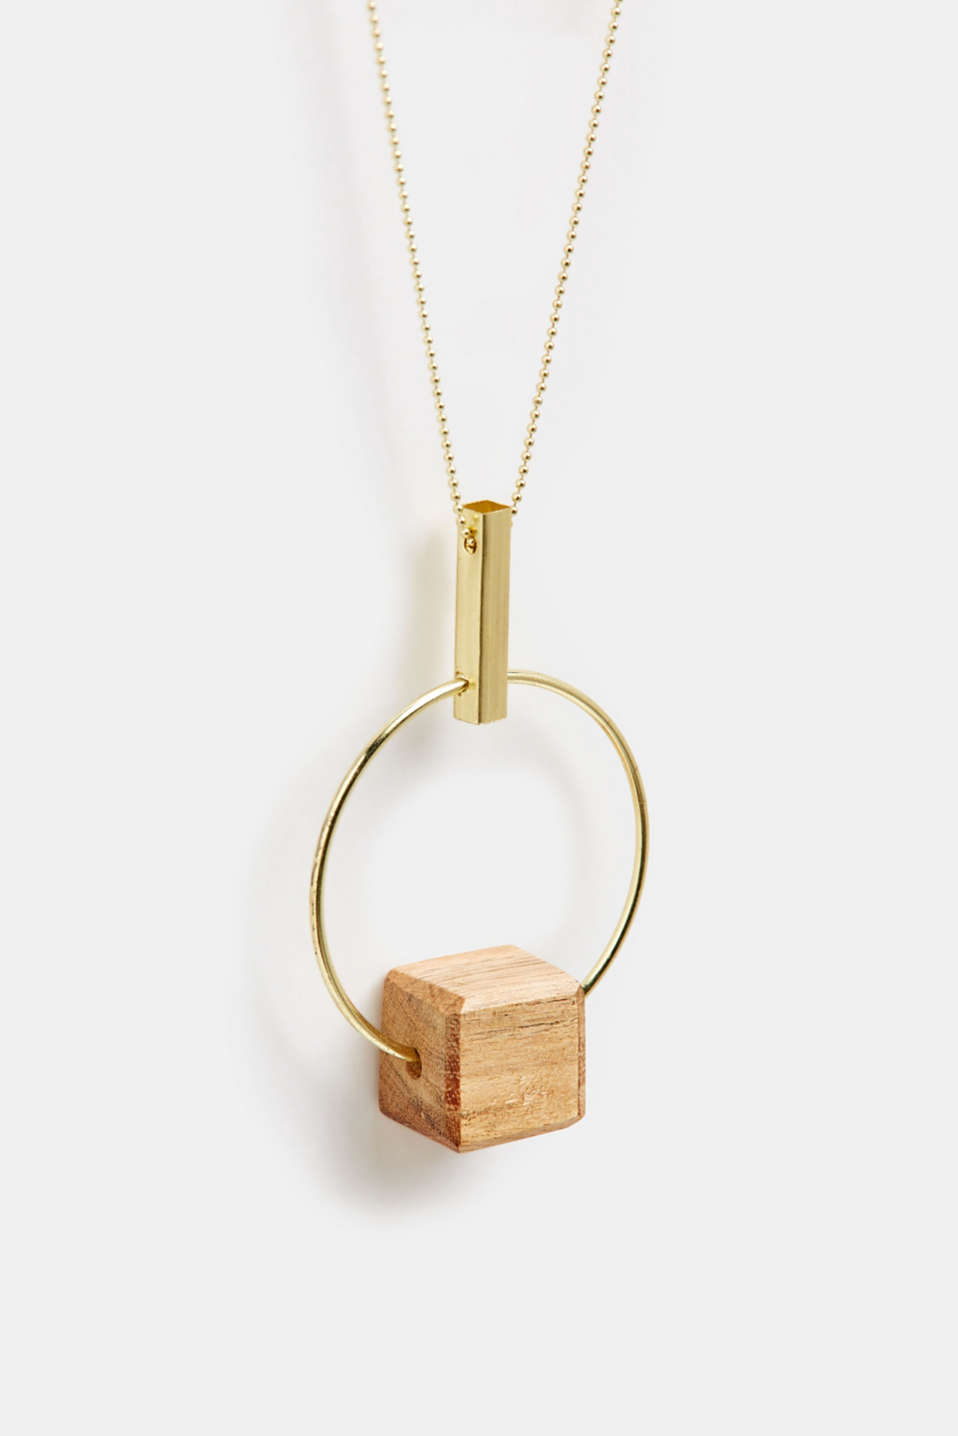 Long necklace with a ring pendant and wooden dice, GOLD, detail image number 1